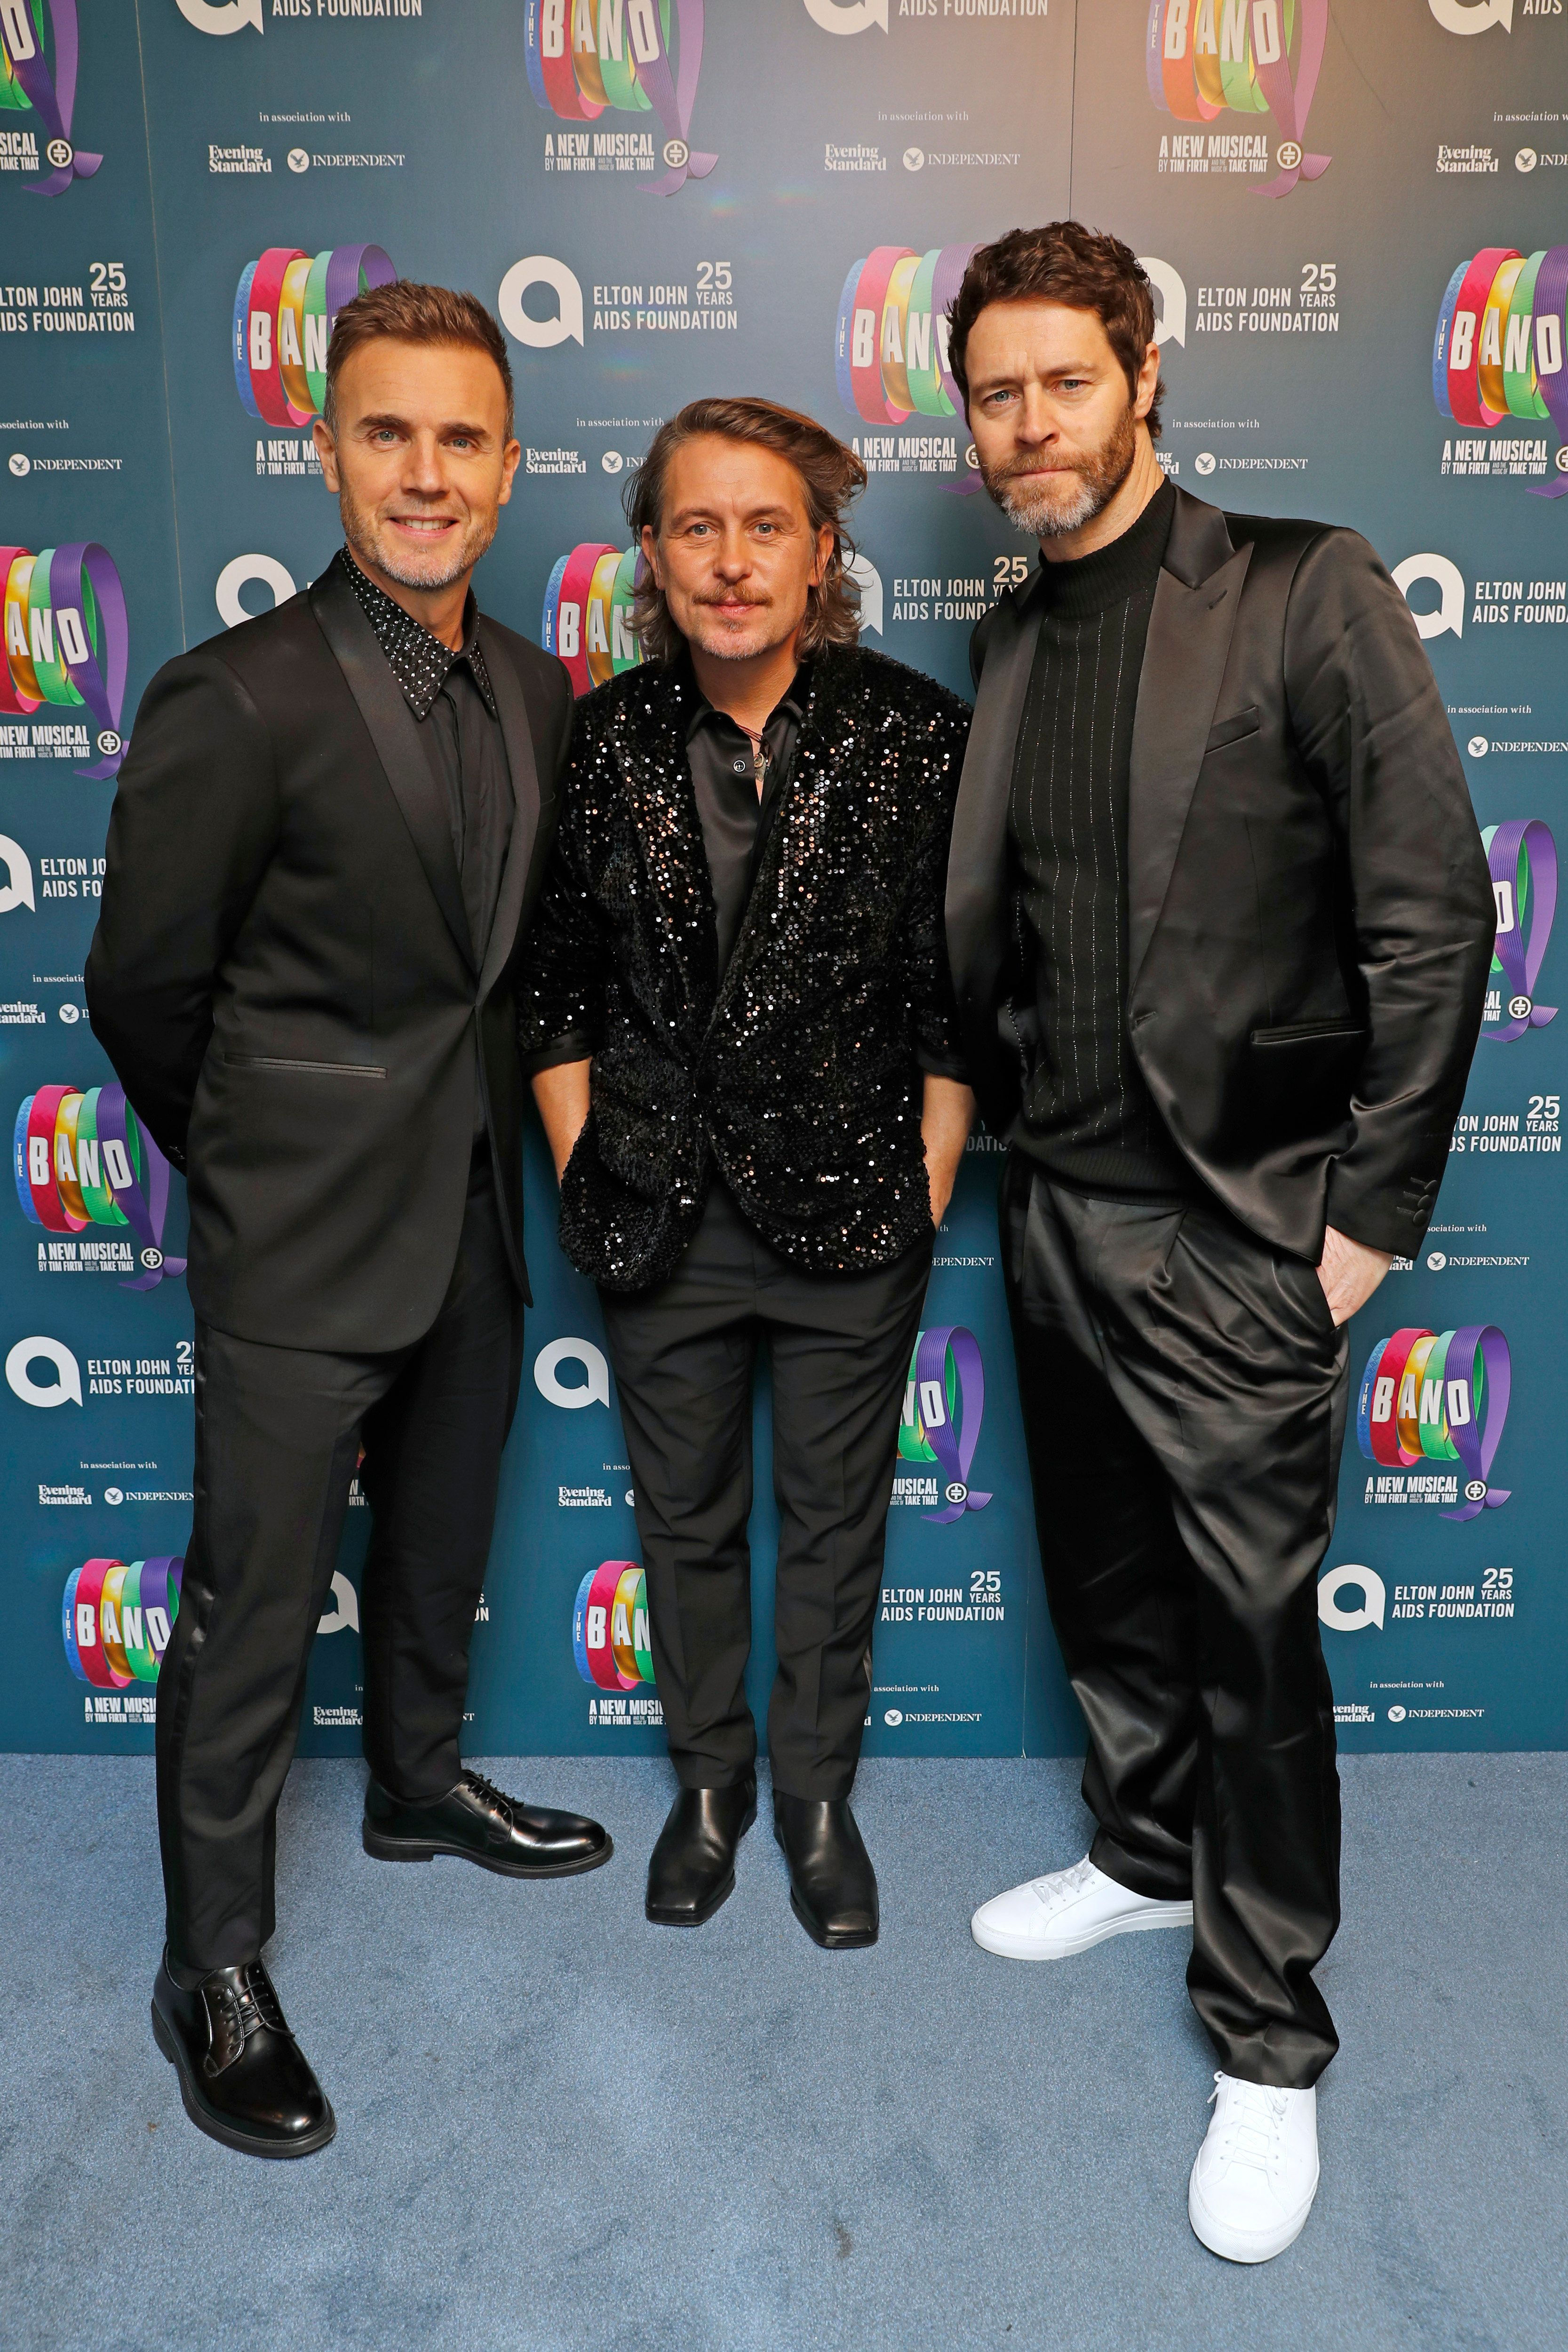 Gary Barlow Cancels Take That World Tour Due To Family